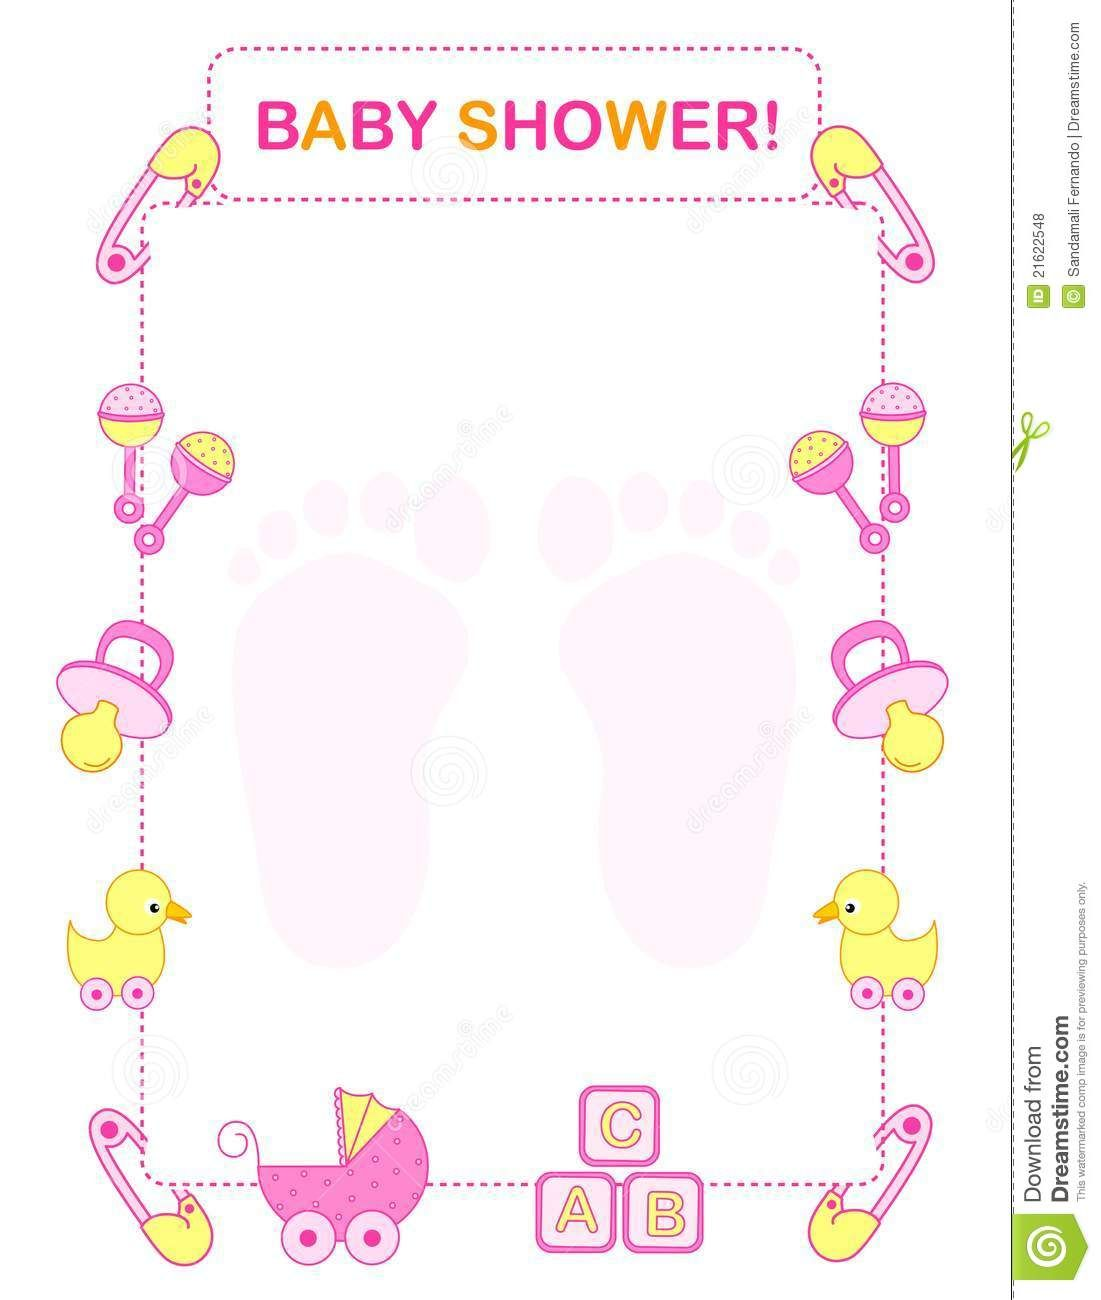 Free Printable Baby Shower Clip Art (59 ).